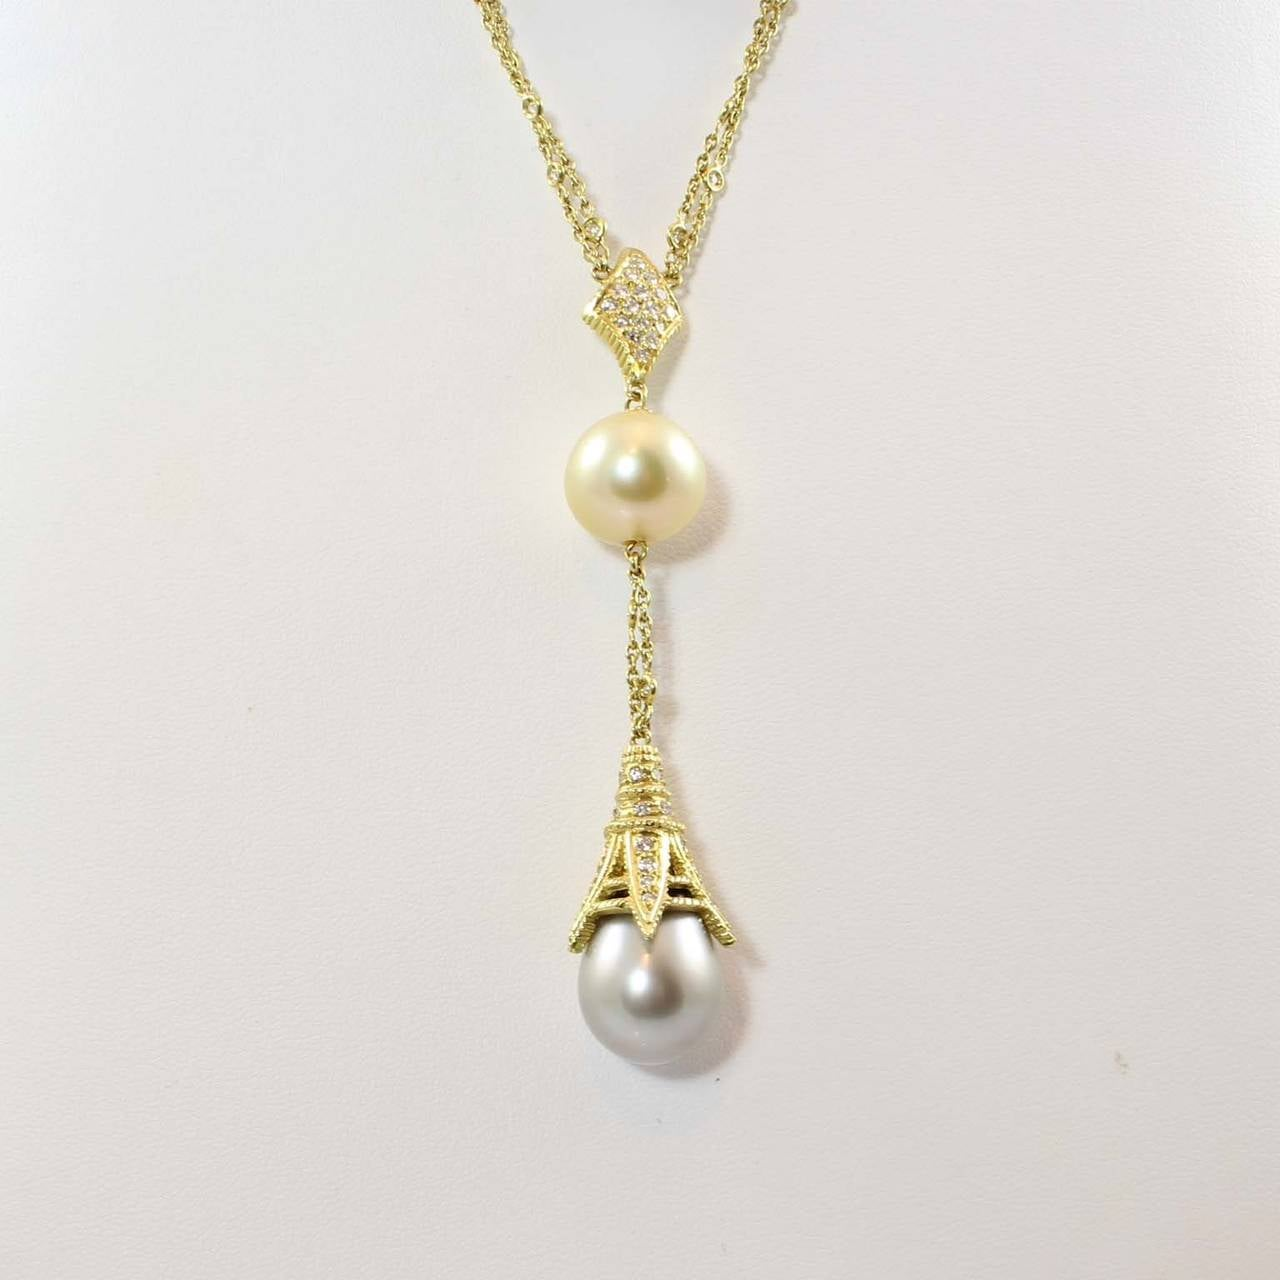 Doris Panos South Sea Pearl Diamond Gold Fantasy Necklace For